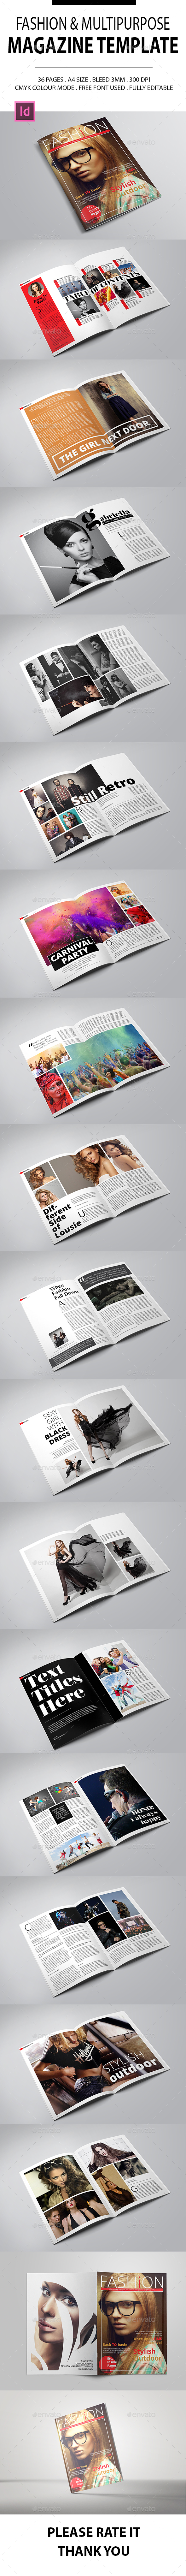 Fashion & Multipurpose Magazine Template - Magazines Print Templates